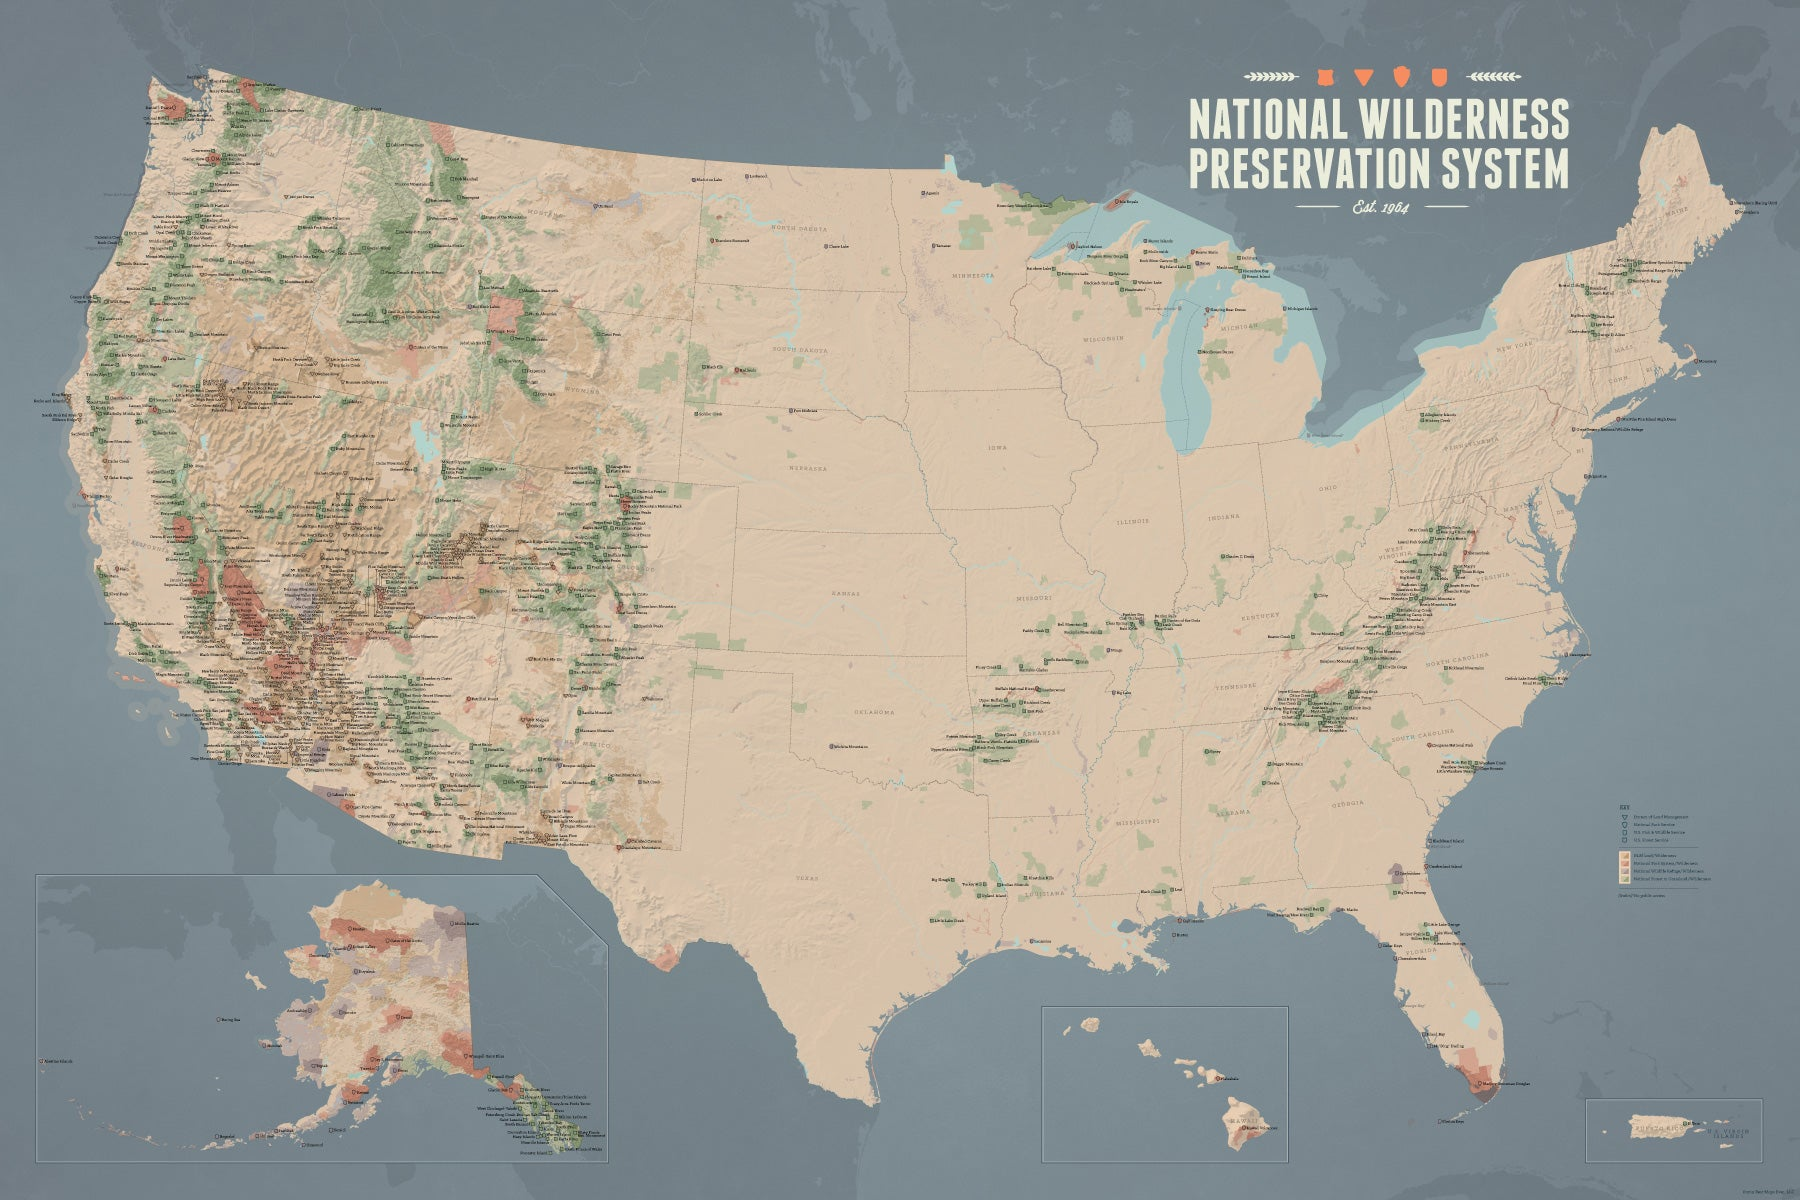 Map Of Wilderness Areas In The Us US National Wilderness Preservation System Map 24x36 Poster   Best